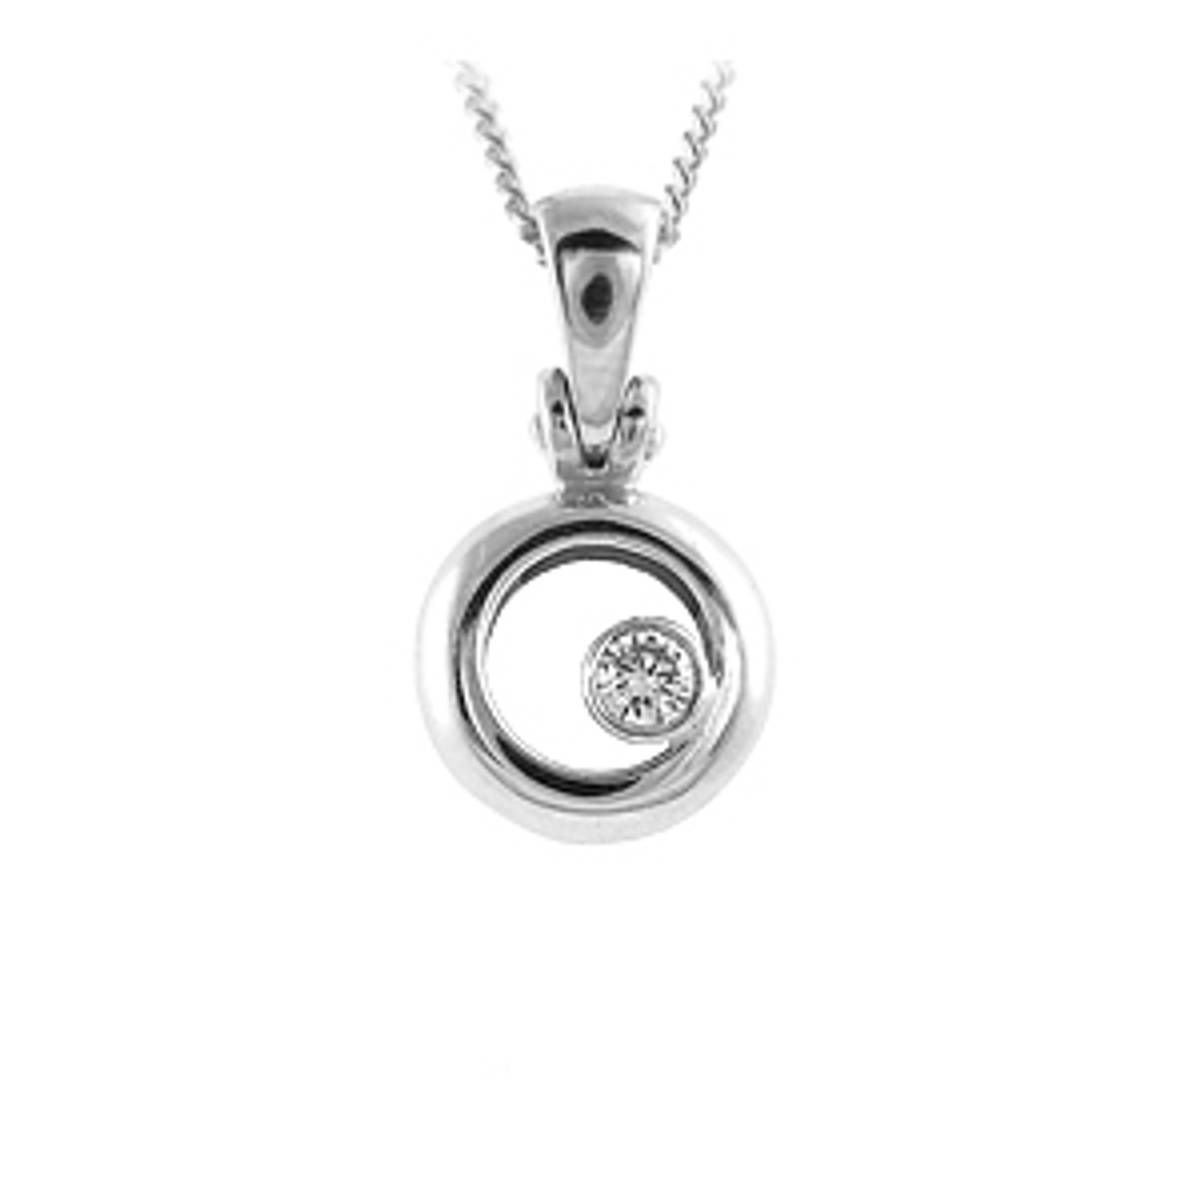 DP3439Diamond rubover set circle pendantPictured item: 0.12ct brilliant cut diamond set in 18k white goldAvailable in: 18k gold